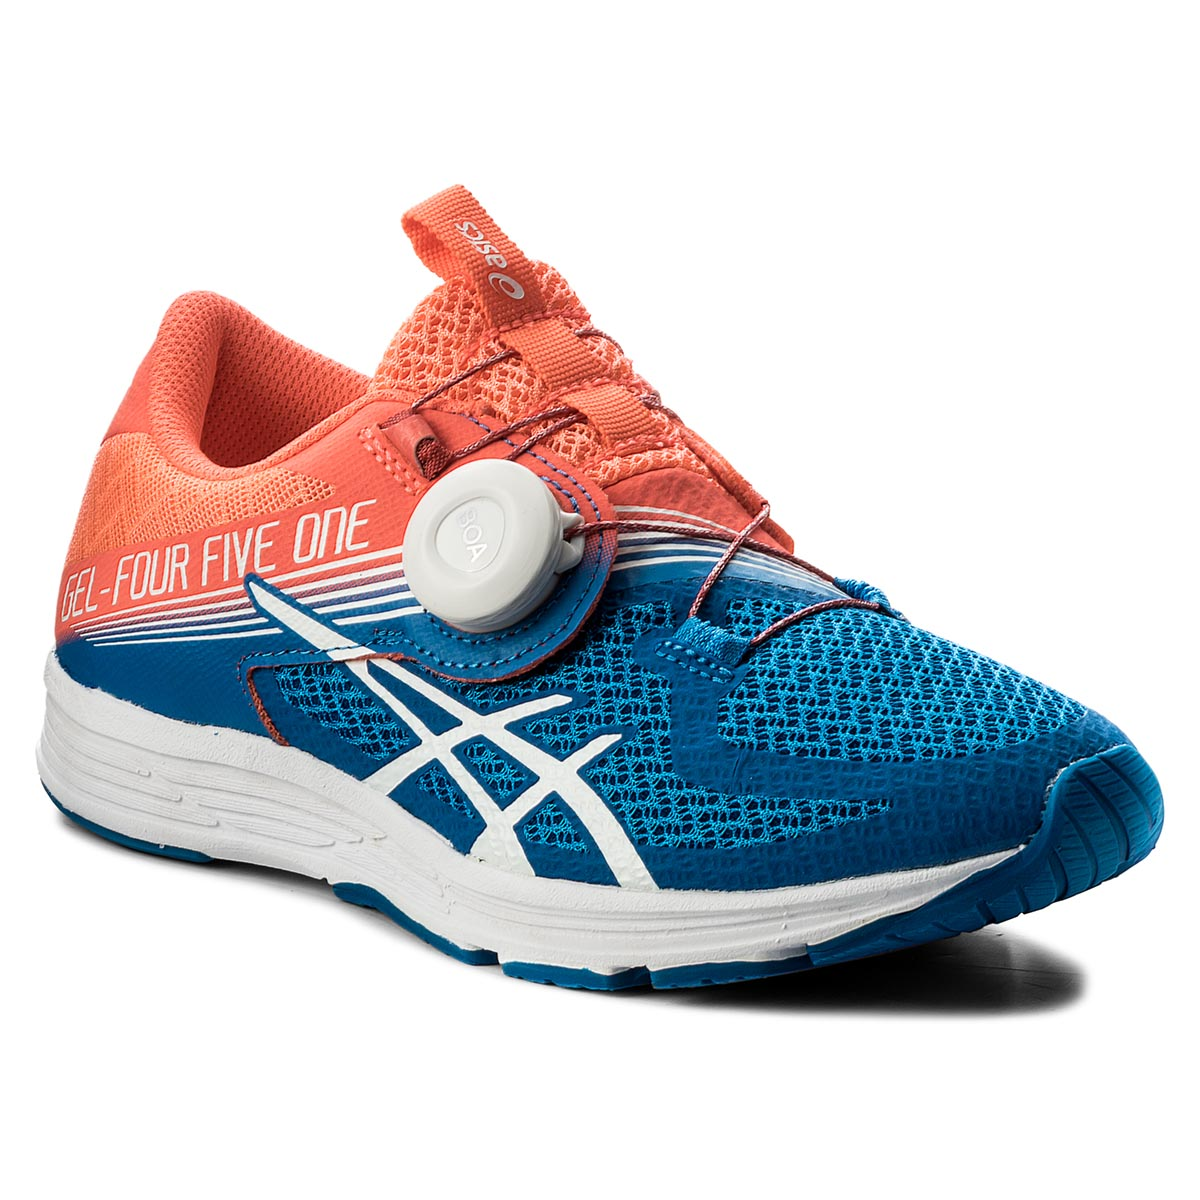 Buty ASICS - Gel-451 T874N Flash Coral/White/Directoire Blue 0601